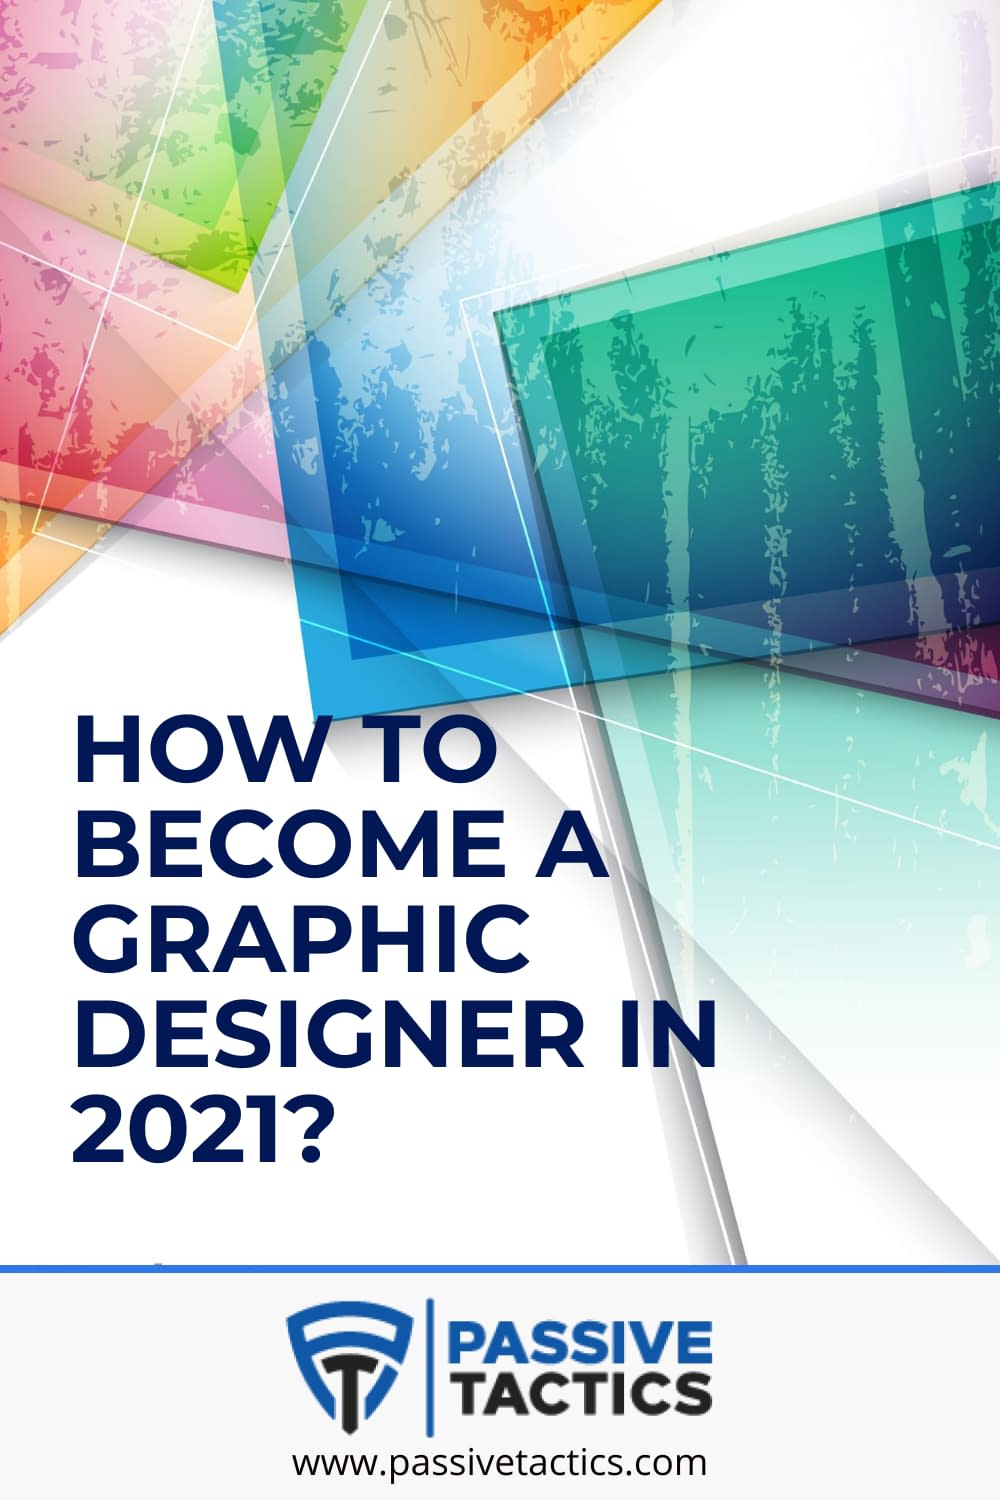 How To Become A Graphic Designer In 8 Steps?